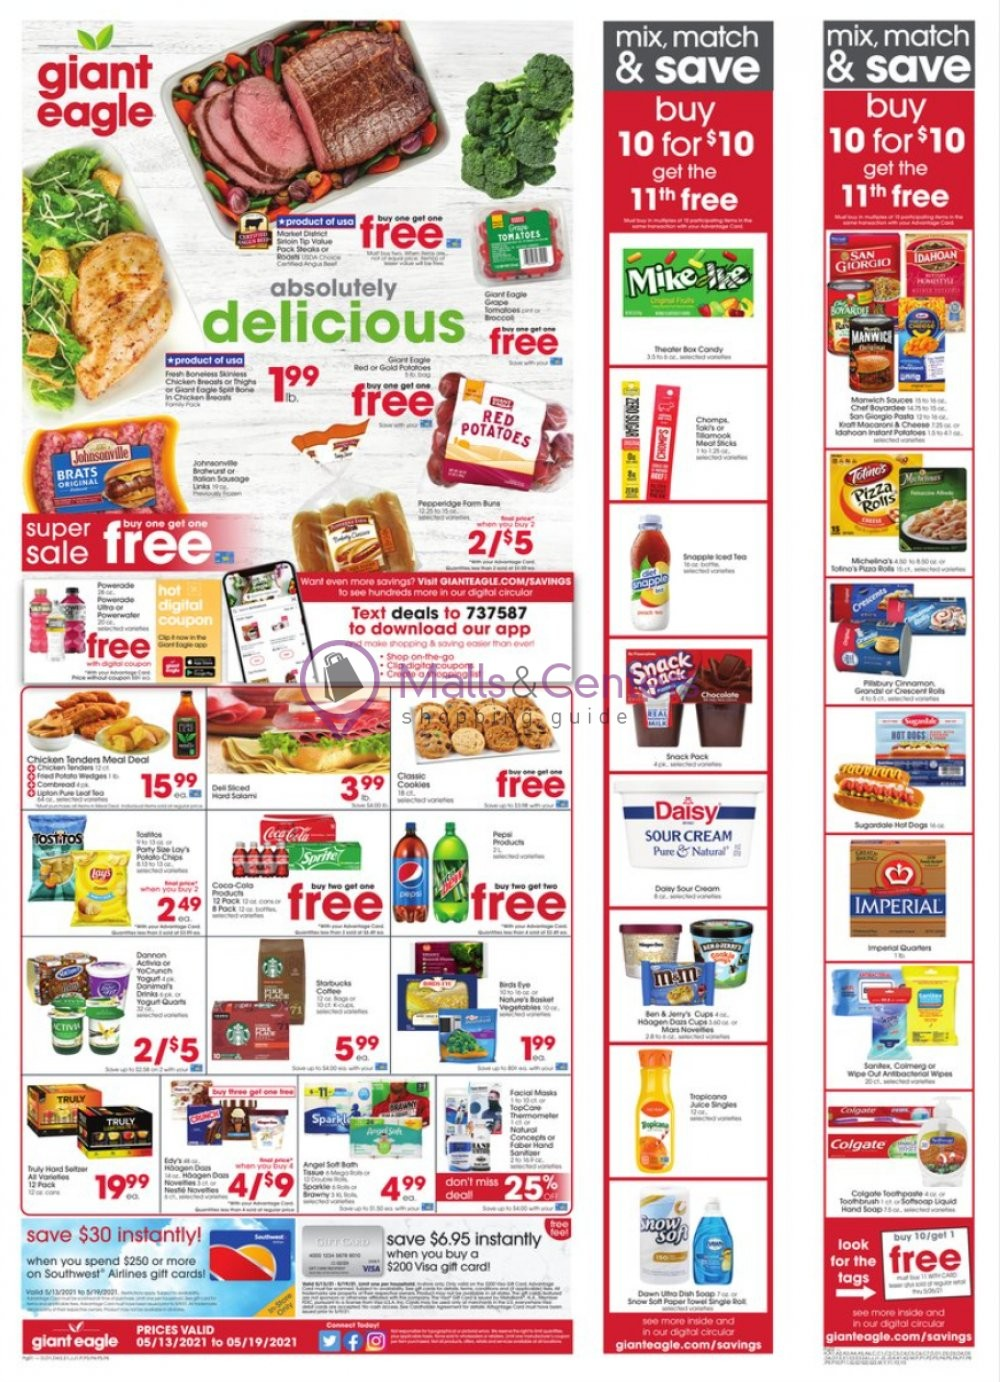 weekly ads Giant Eagle - page 1 - mallscenters.com